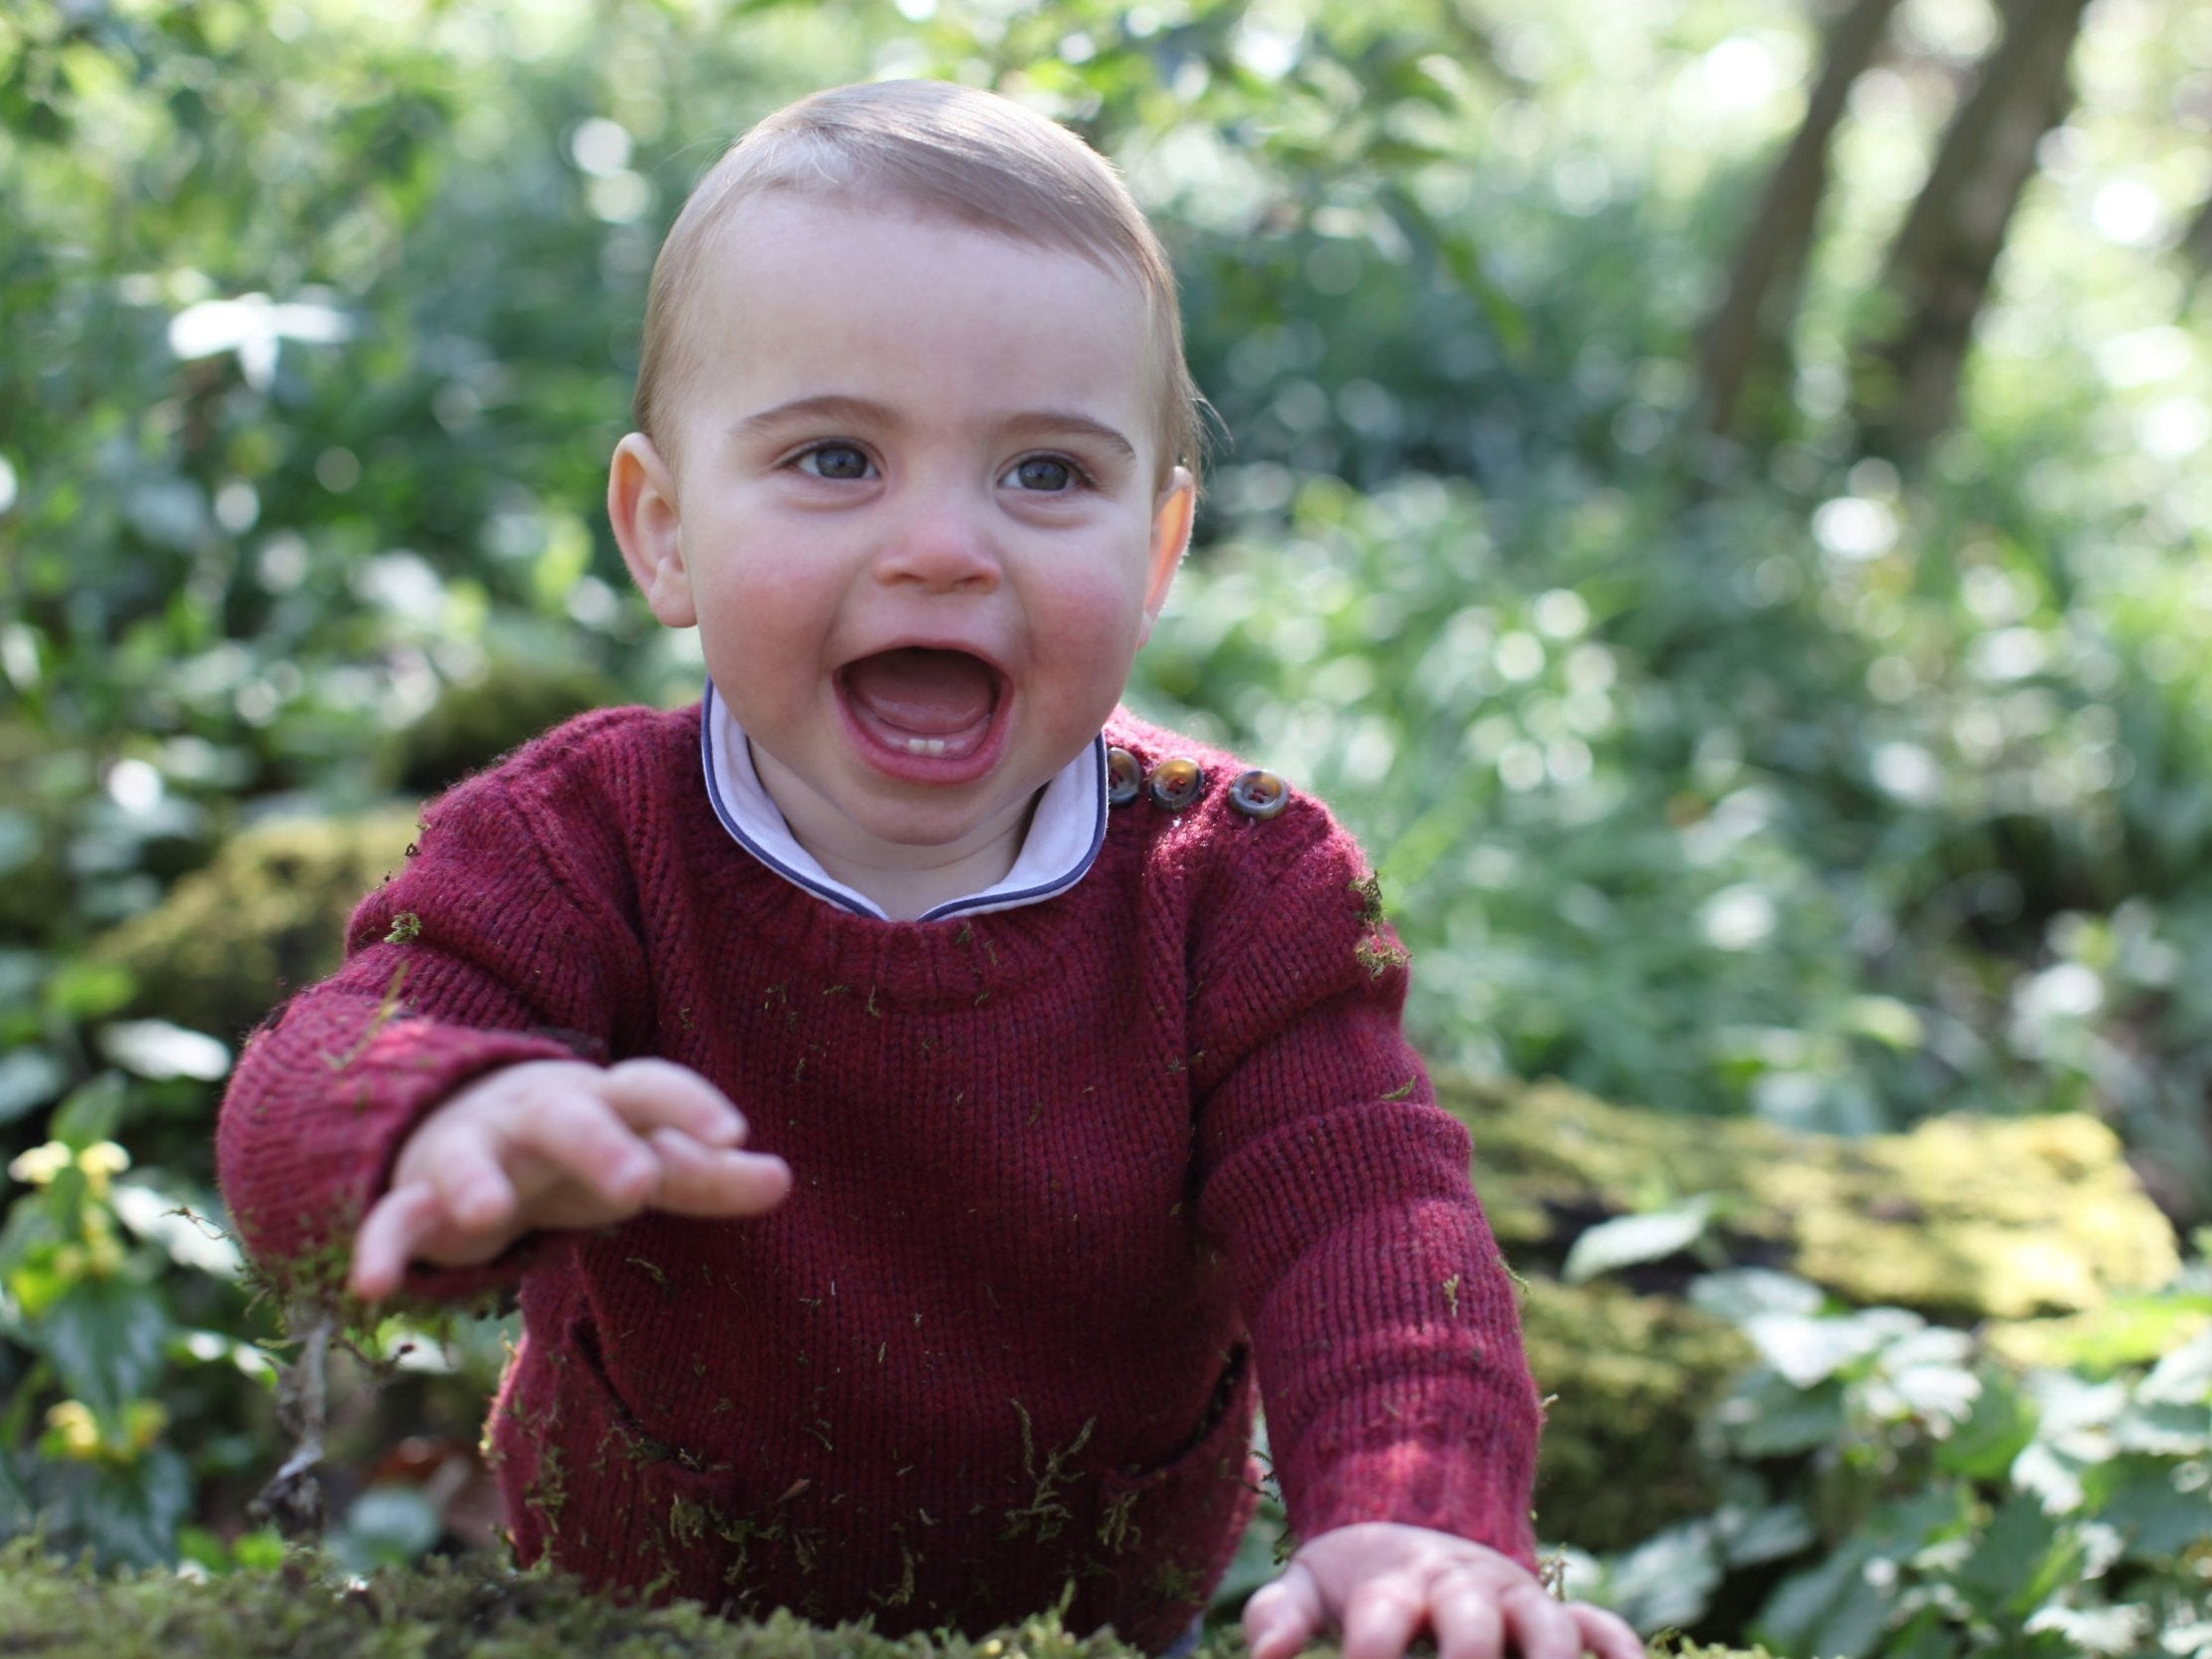 Prince Louis: Kensington Palace releases new photographs to mark royal baby's first birthday